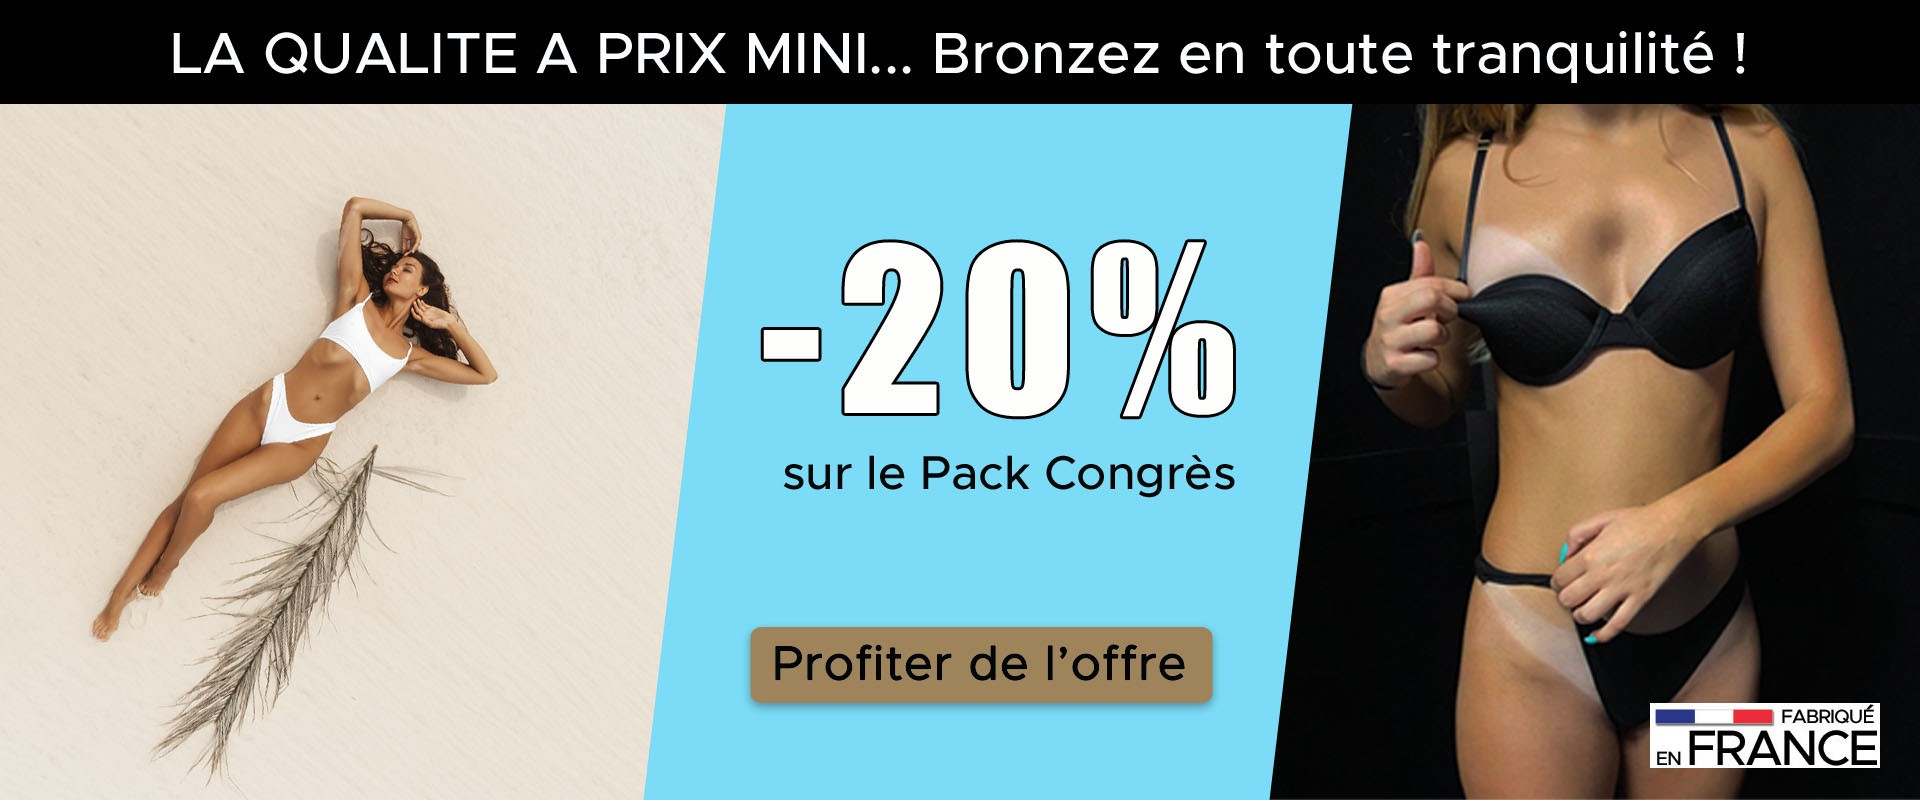 Pack tanning professionnel promo - vente flash